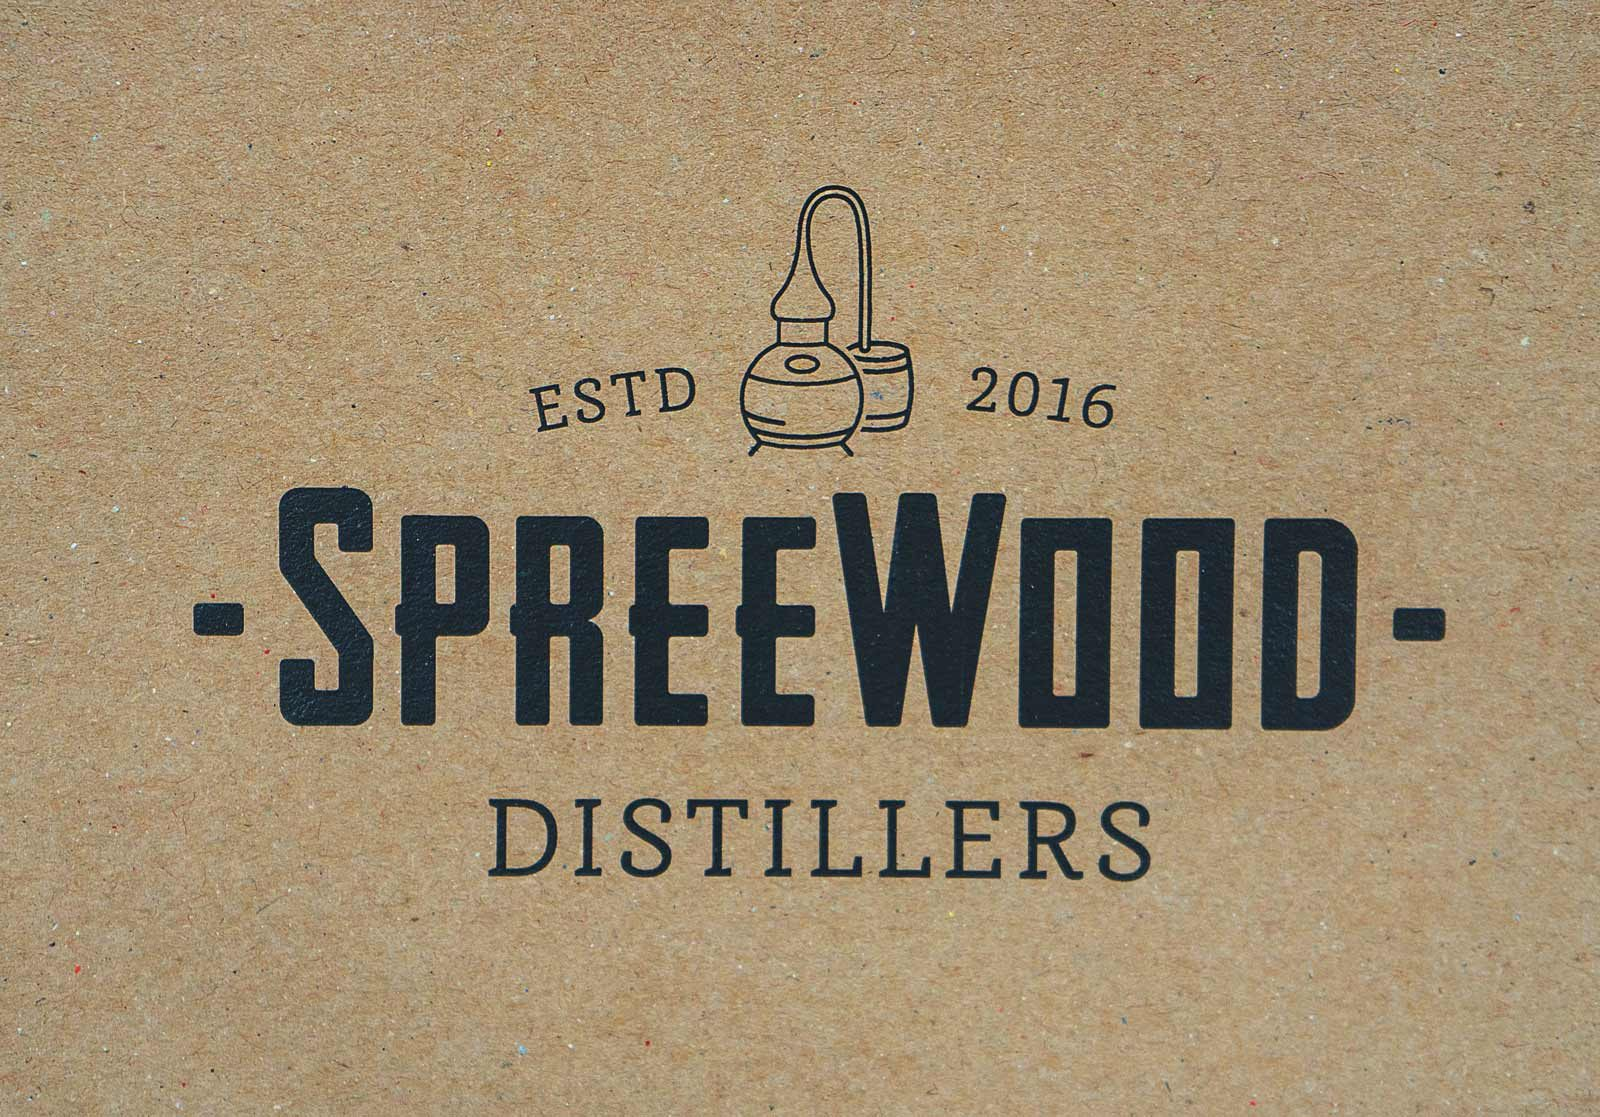 Editienne Grafikdesign - Kommunikationsdesign Berlin- Packaging Design- Spreewood Distillers 11